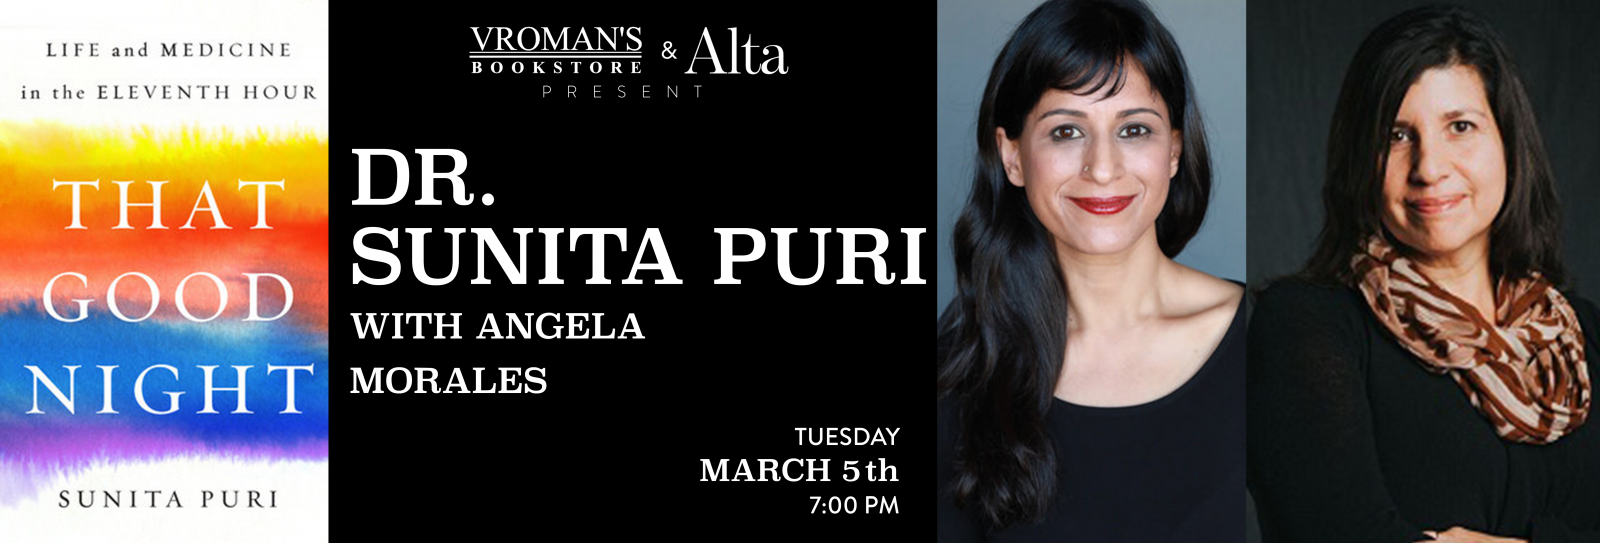 Dr. Sunita Puri, in conversation with Angela Morales Tuesday March 5th at 7pm